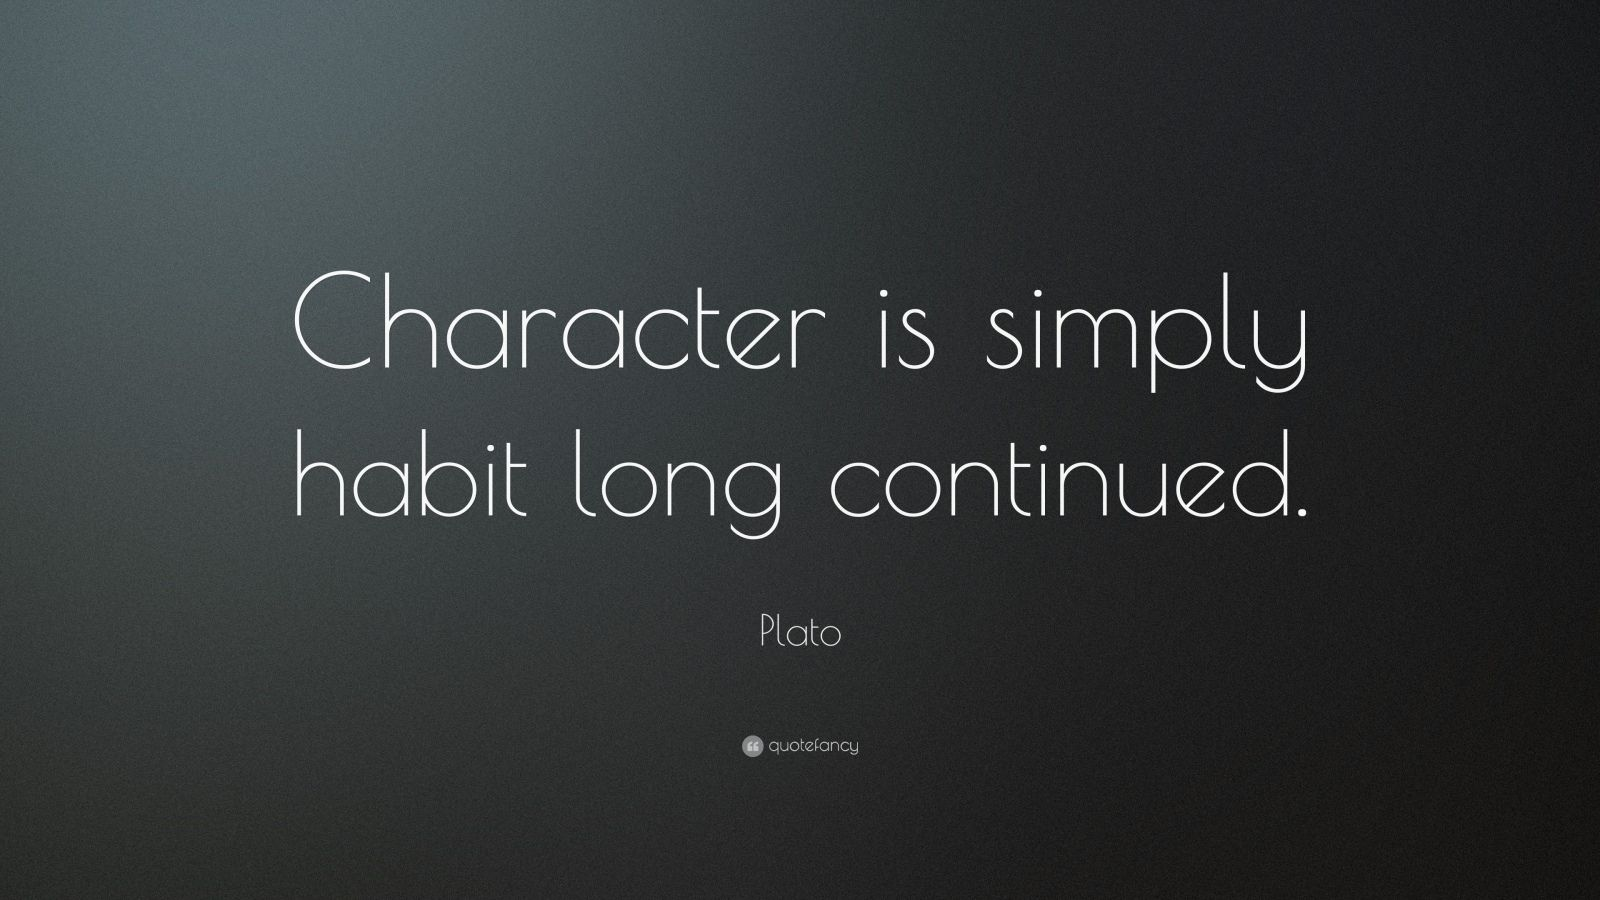 Leadership Quotes Wallpapers Hd Plato Quote Character Is Simply Habit Long Continued